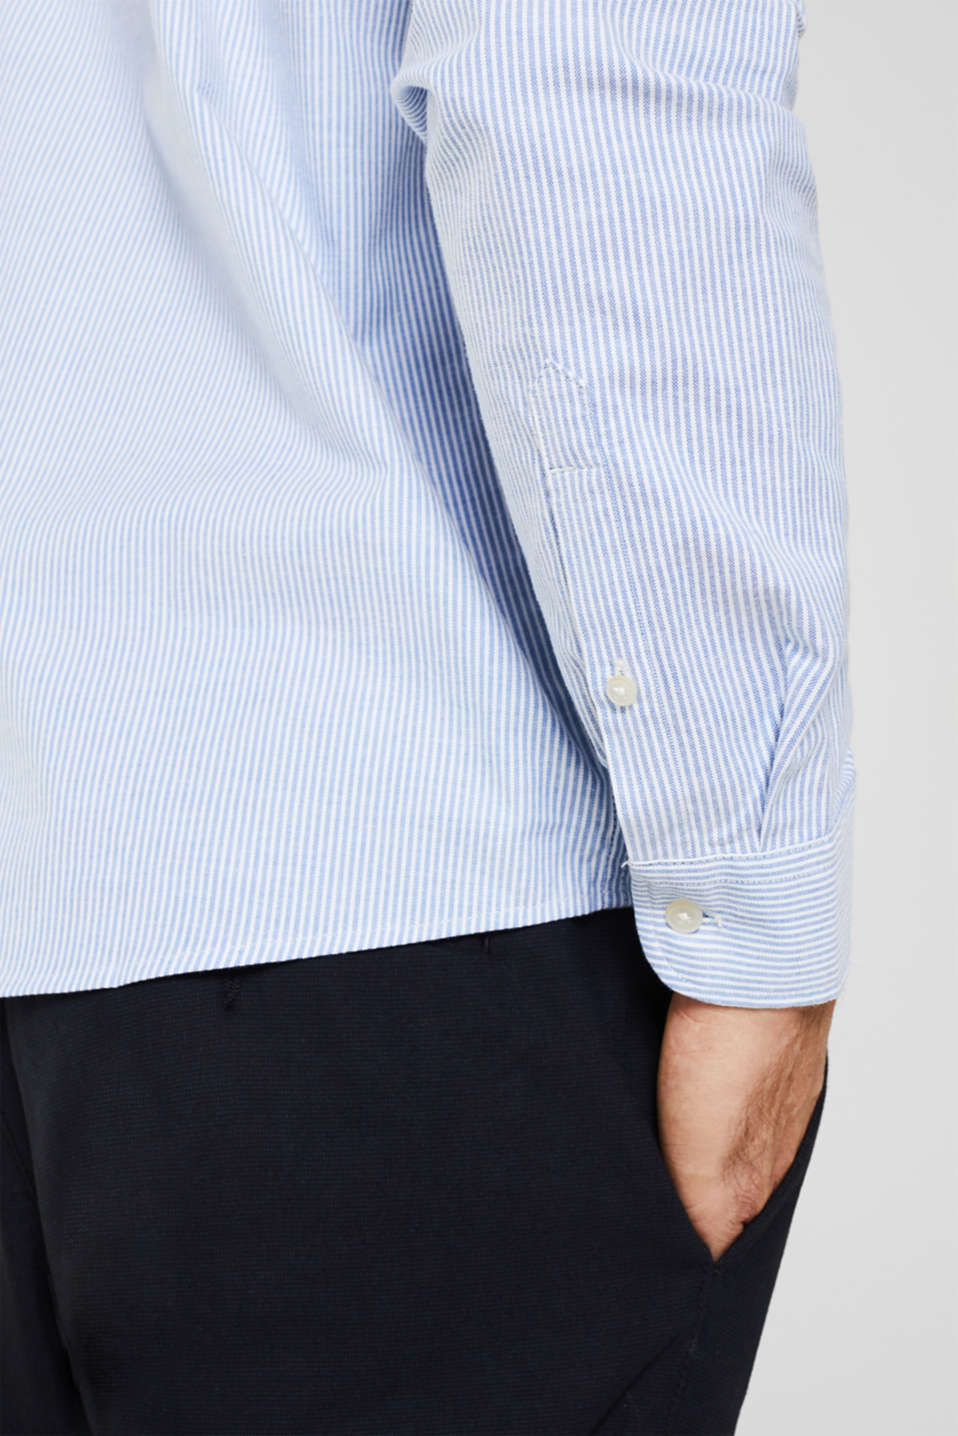 Oxford shirt in stretch cotton, LIGHT BLUE 3, detail image number 5